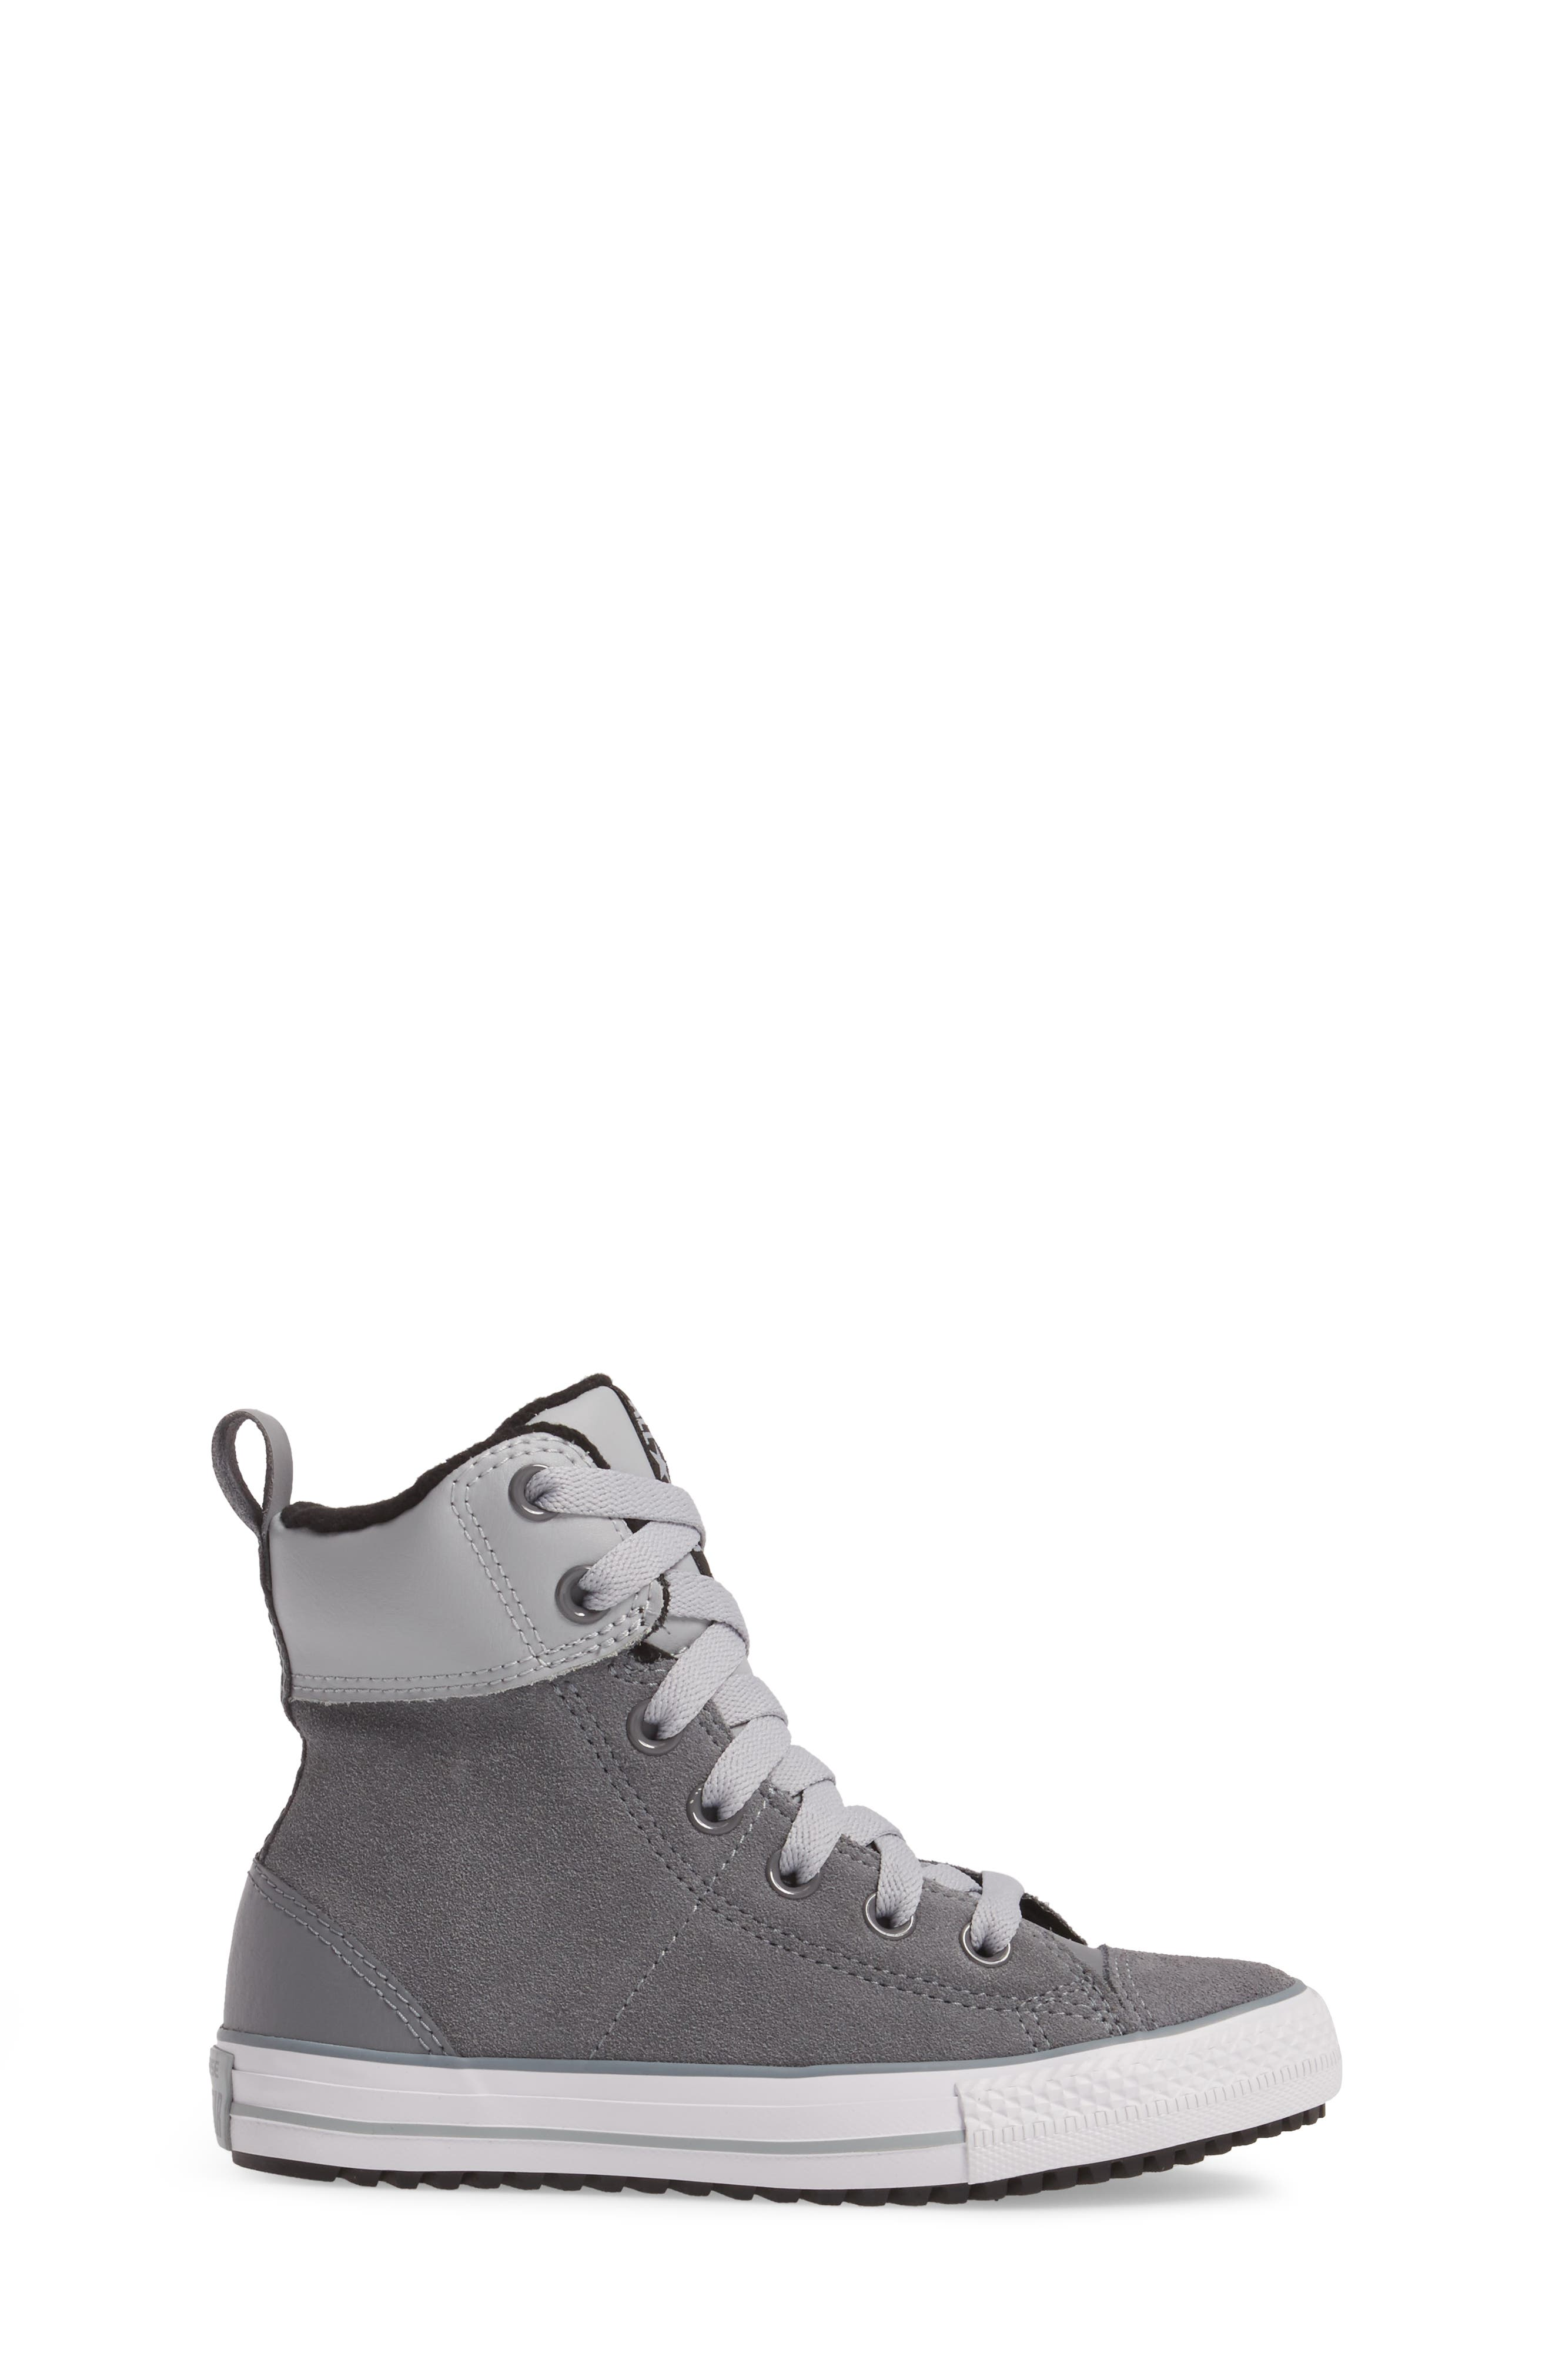 Chuck Taylor<sup>®</sup> All Star<sup>®</sup> Asphalt Sneaker Boot,                             Alternate thumbnail 3, color,                             039